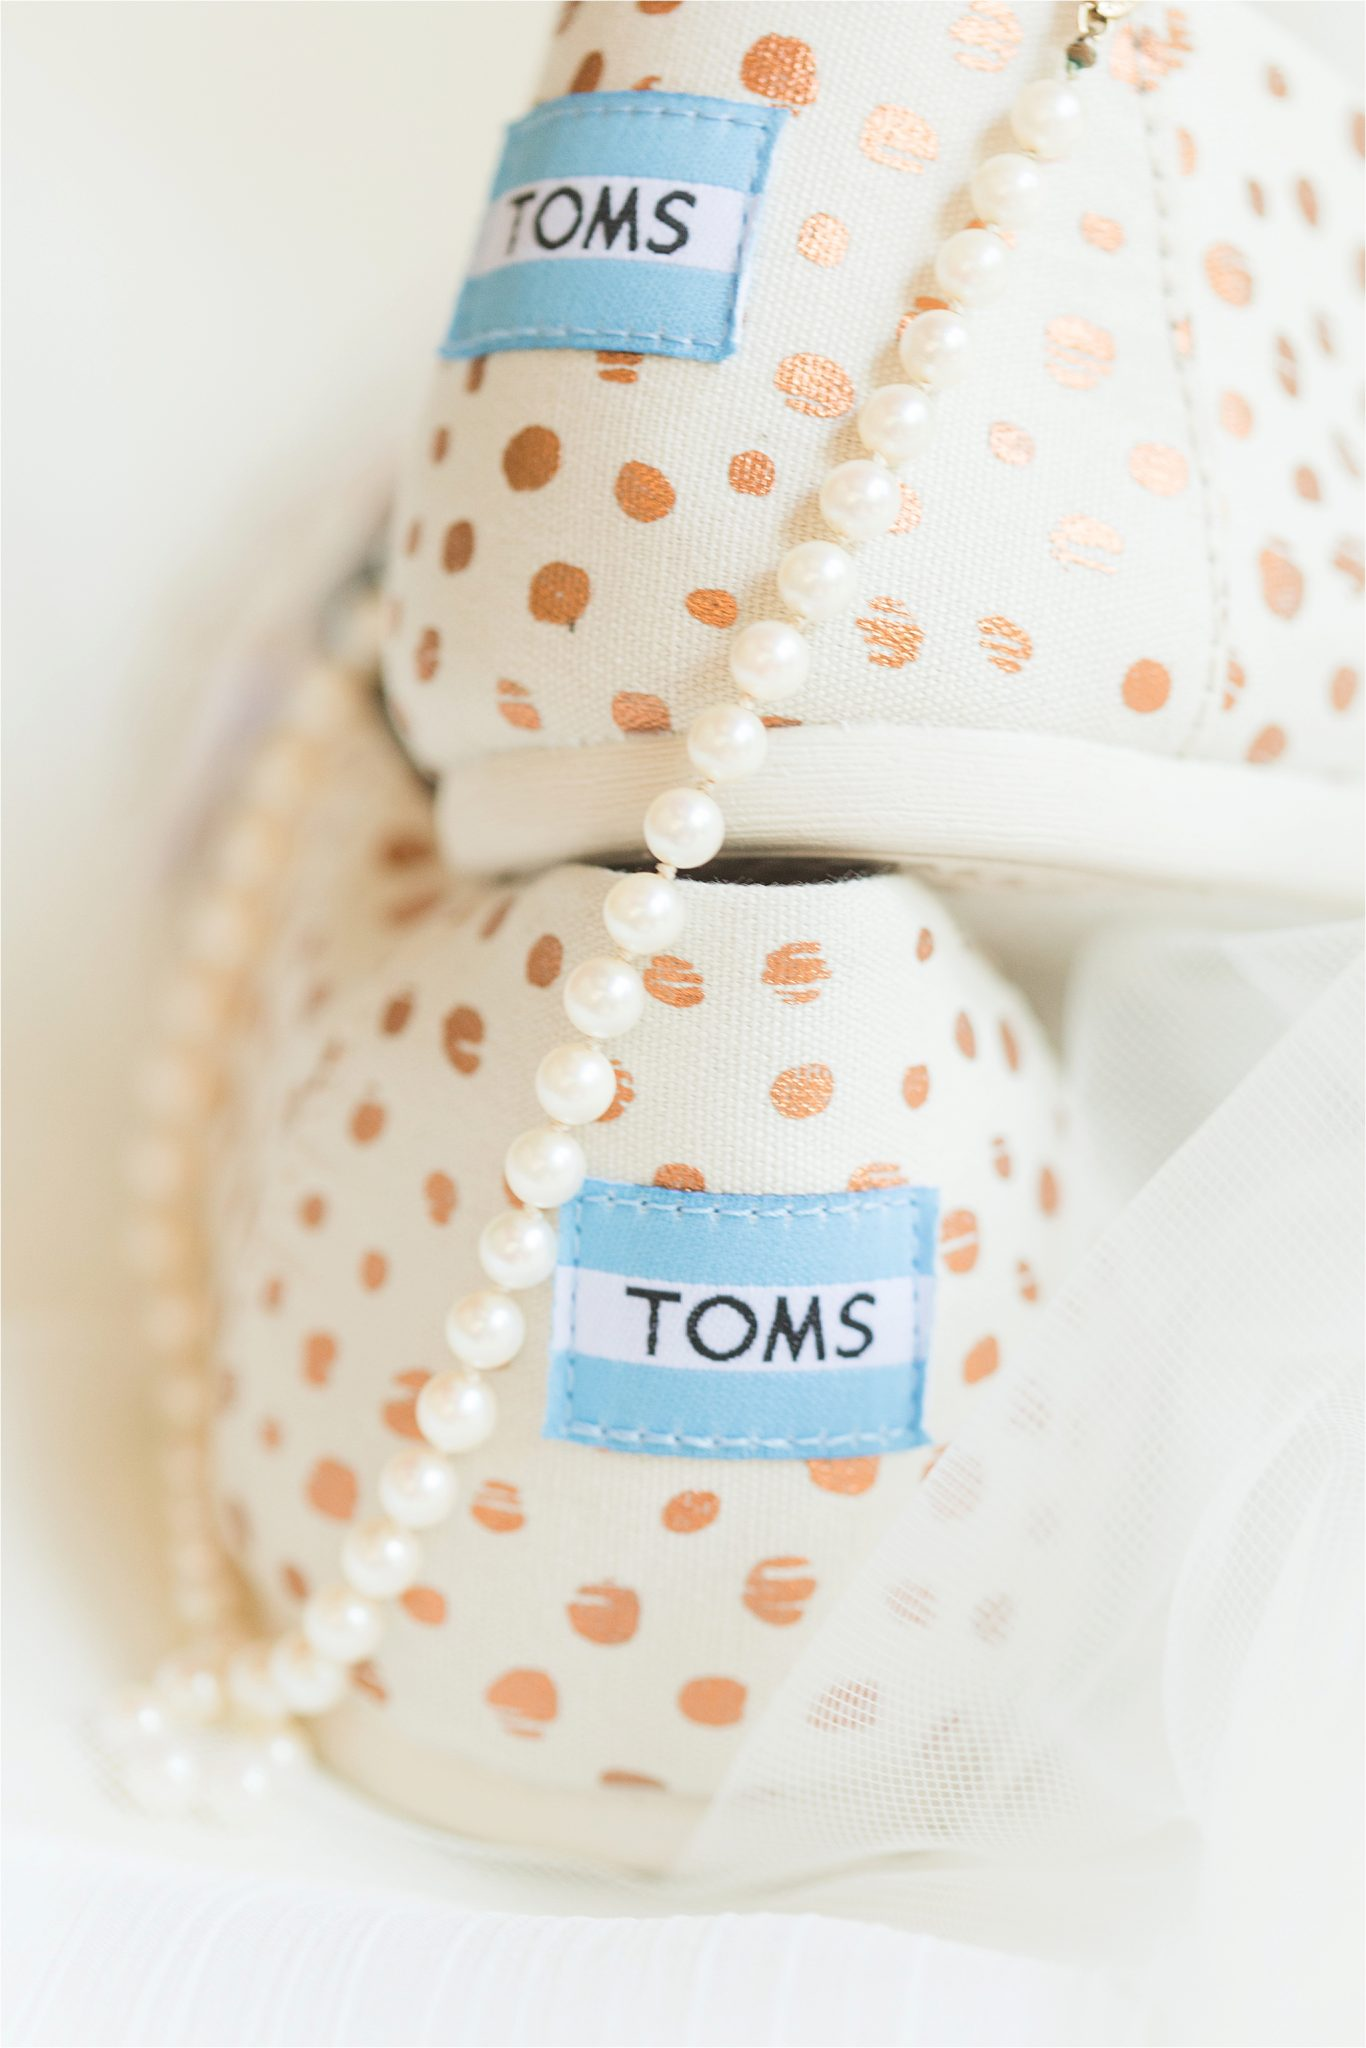 Toms wedding shoes-pearls-gold detail